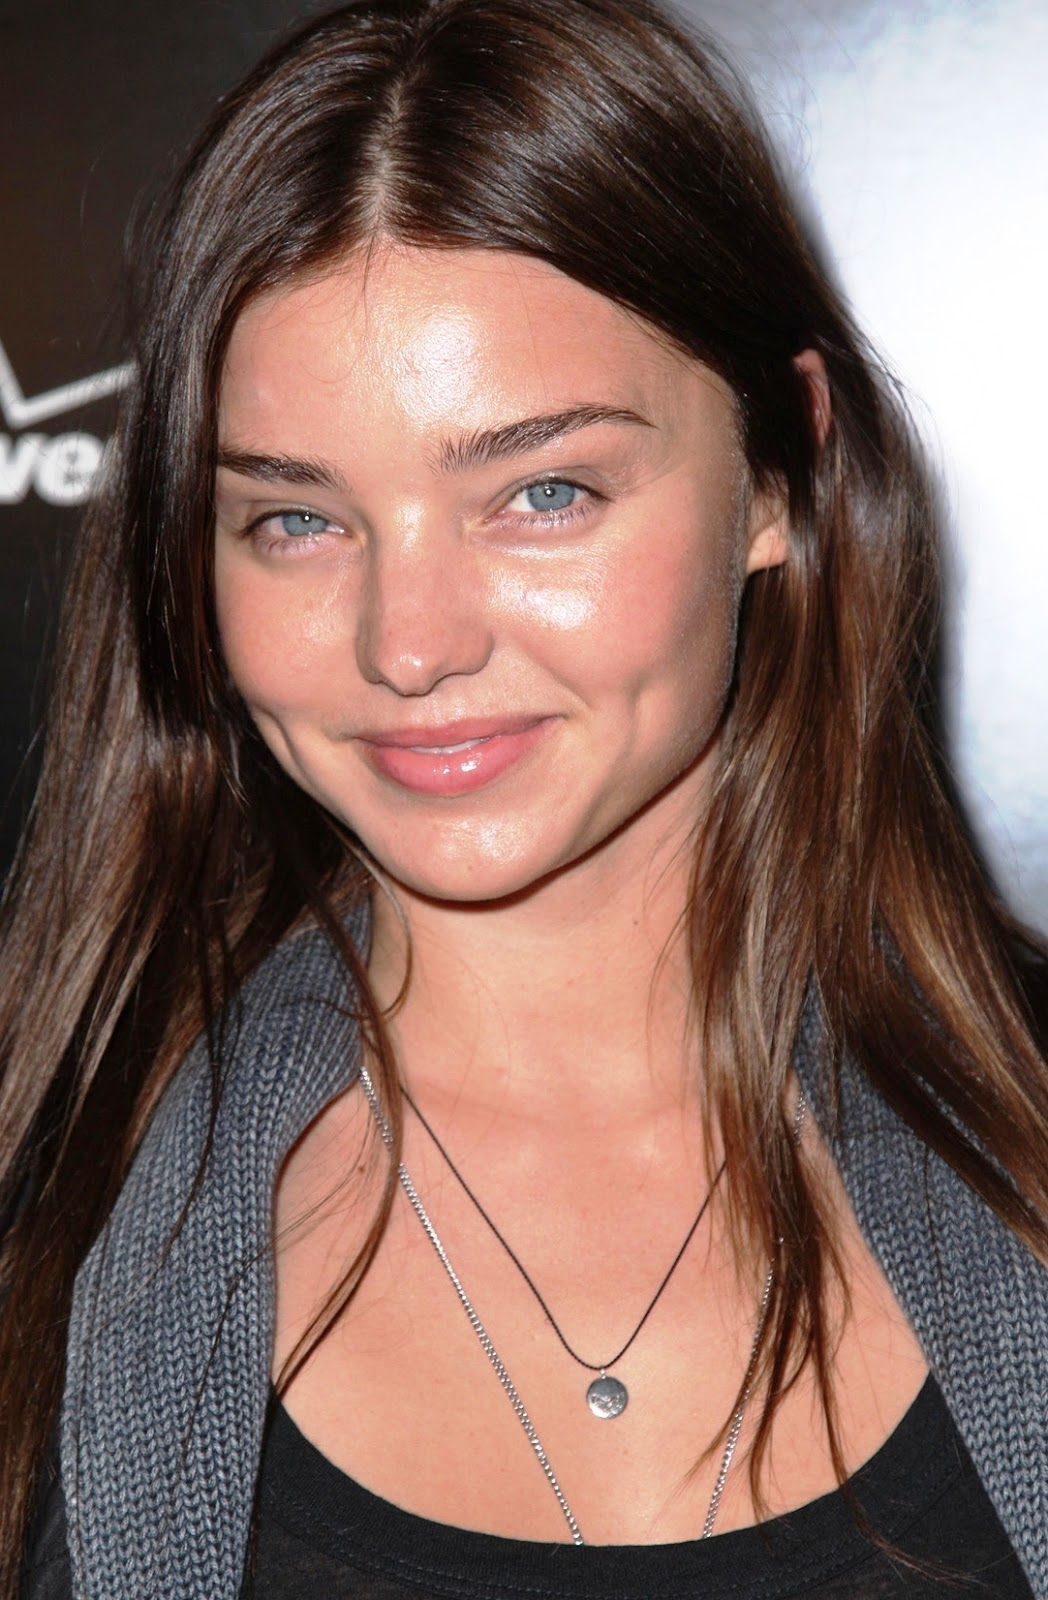 Miranda Kerr Biography And Photos 100 Images